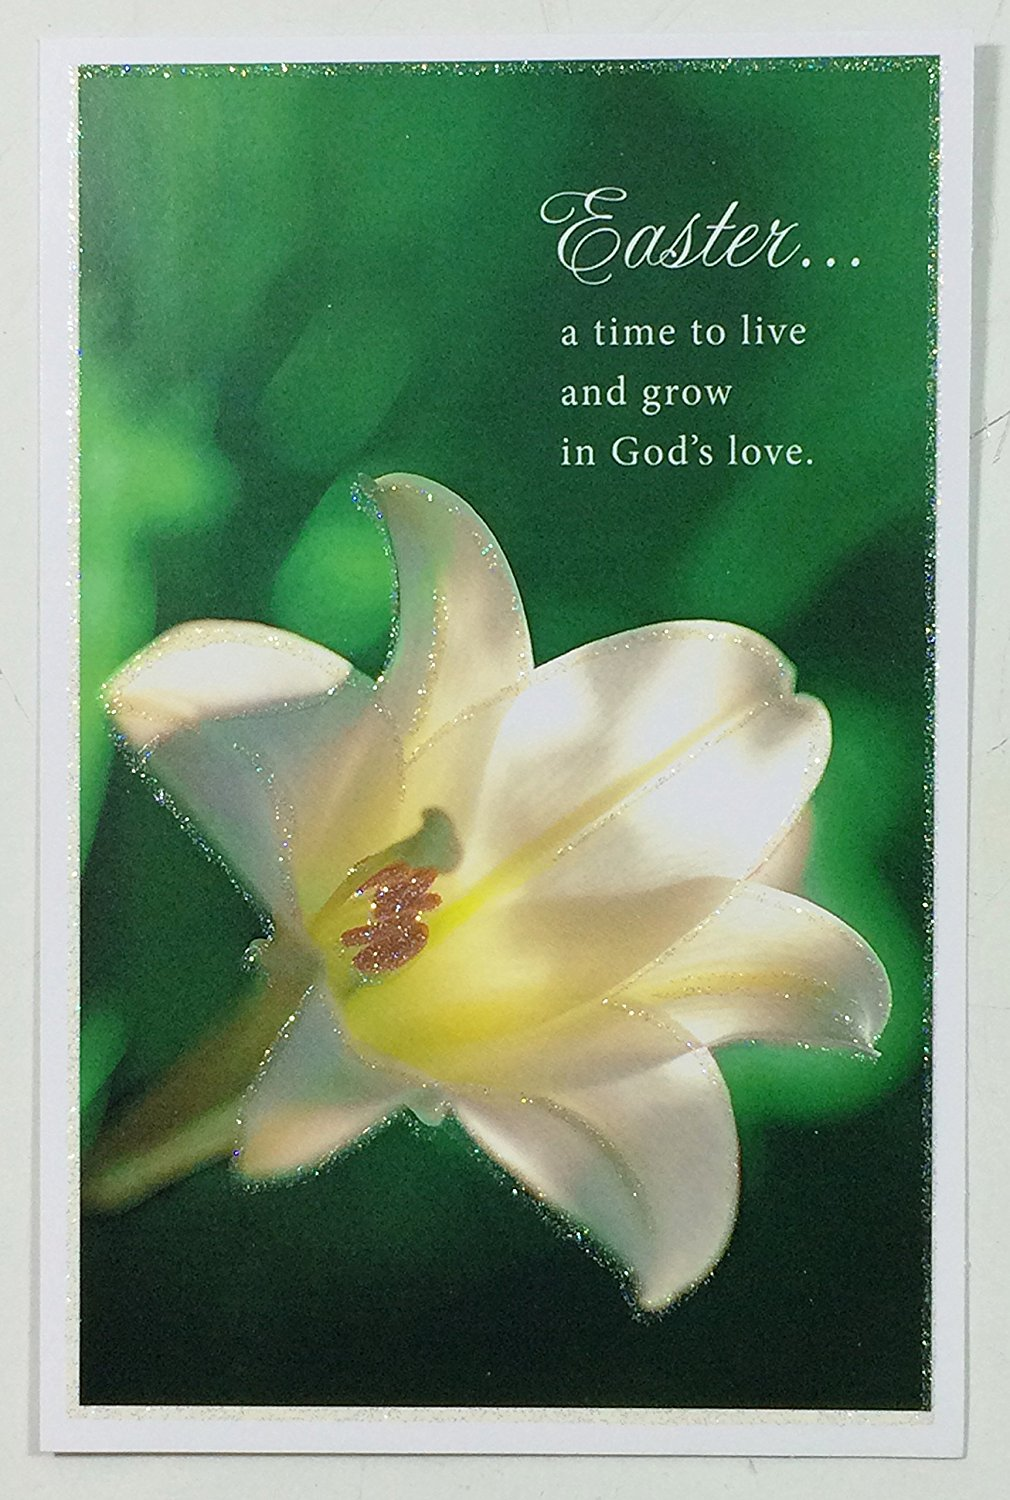 Cheap easter cards religious find easter cards religious deals on get quotations easter cards religious eastera time to live and grow in gods m4hsunfo